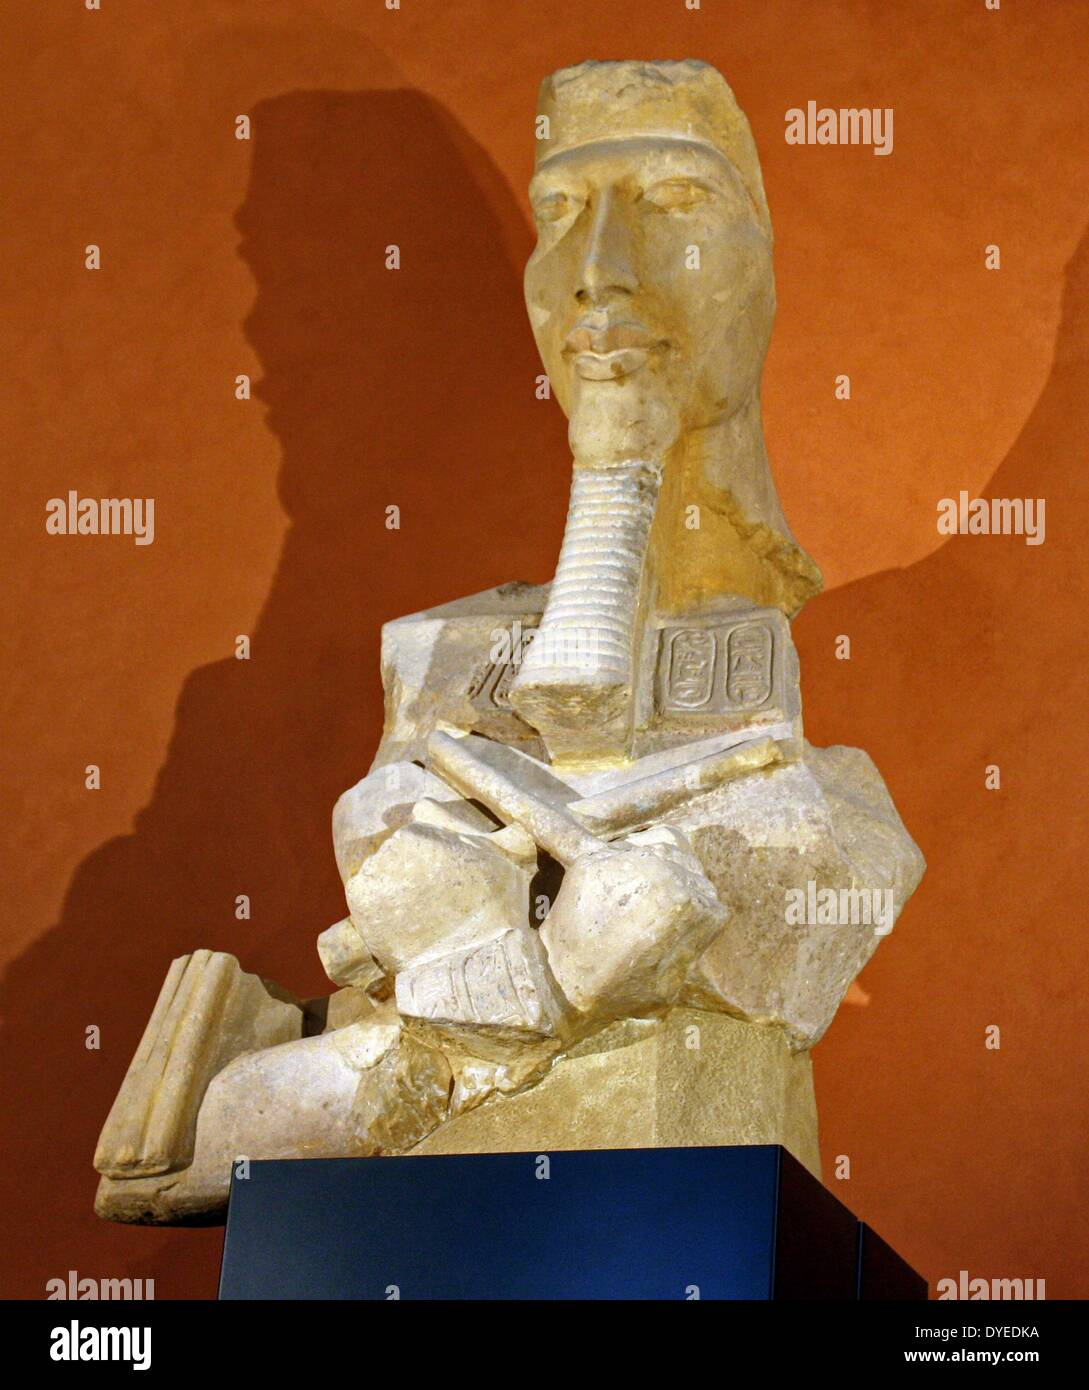 Partial Statue of King Amenhotep IV 1350 B.C. - Stock Image